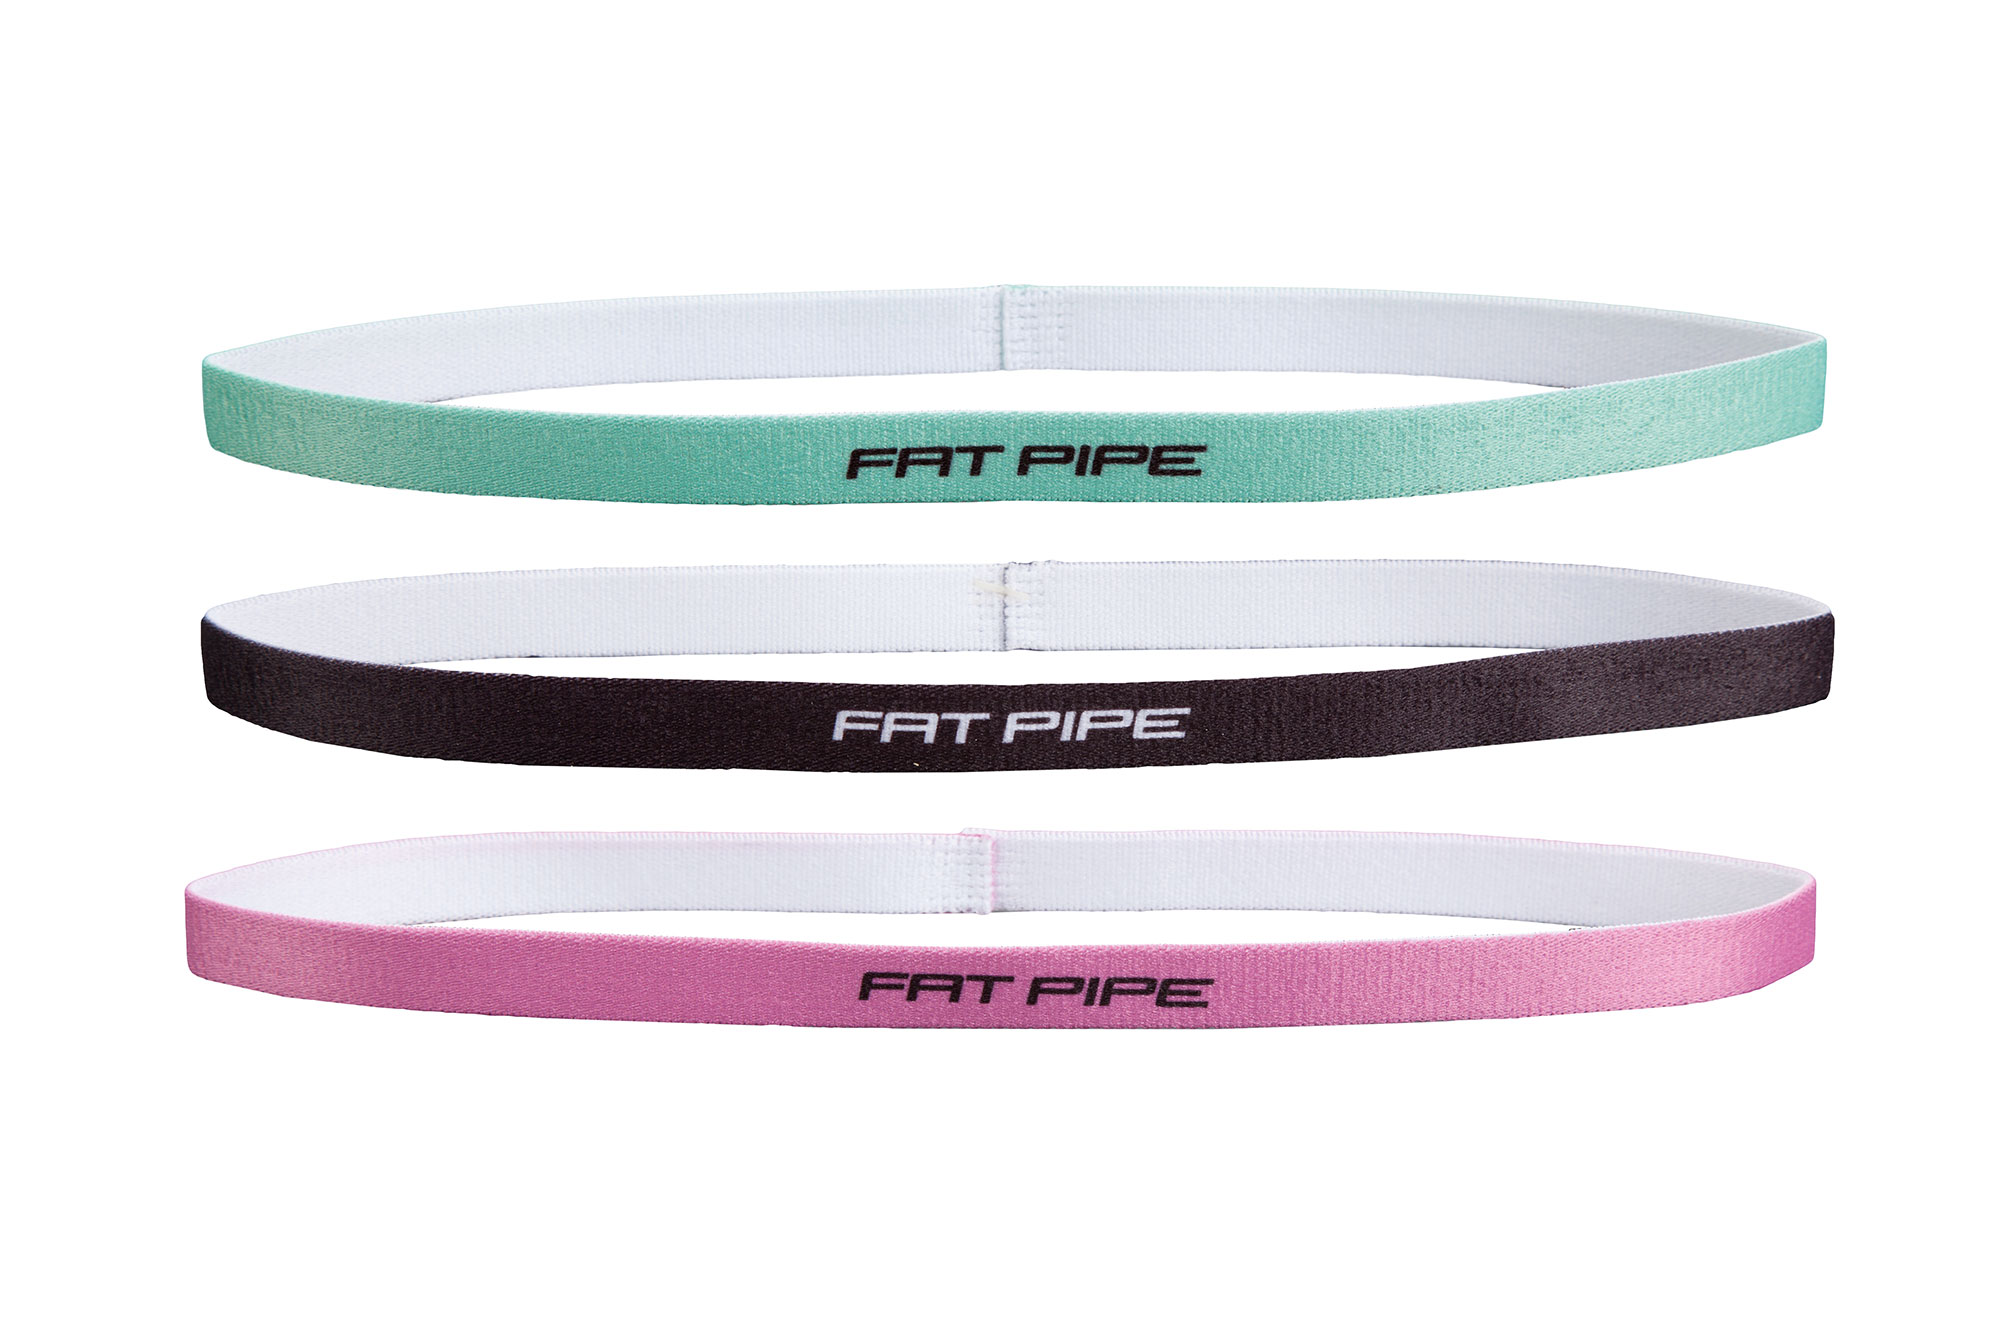 Fatpipe Winny-Headband Set | green - black - pink